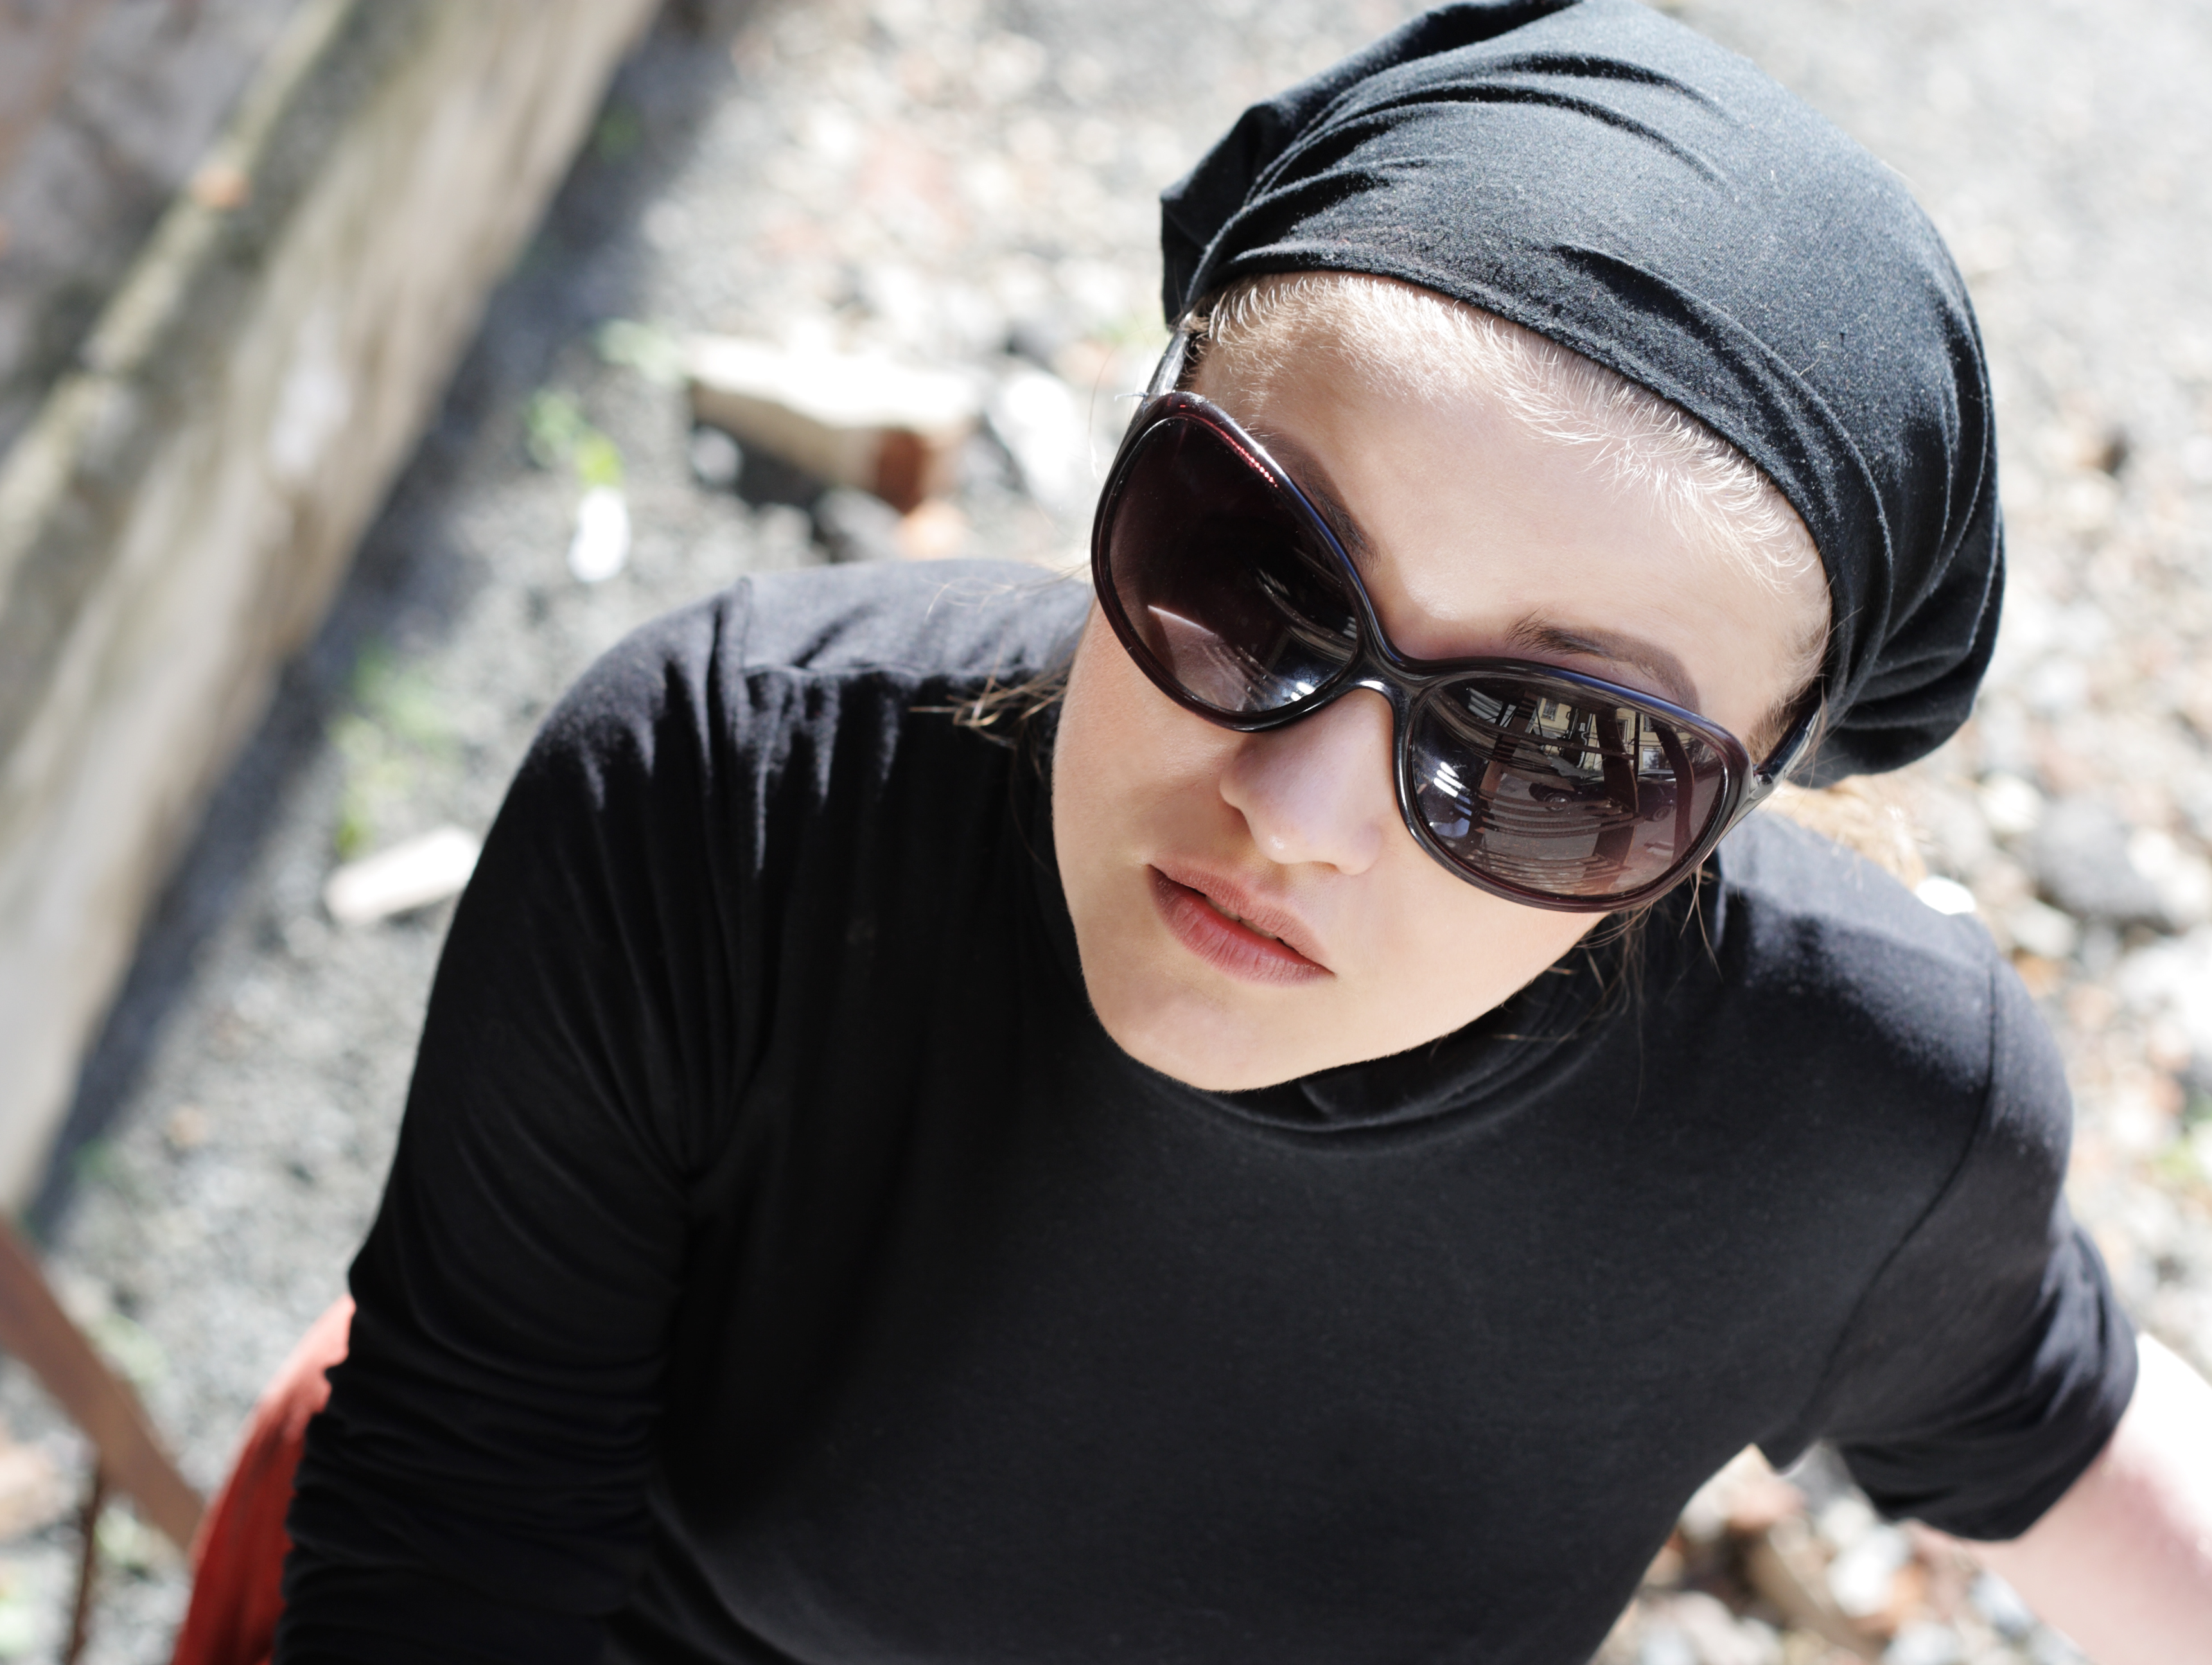 Beautiful Woman in Sunglasses and Kerchief